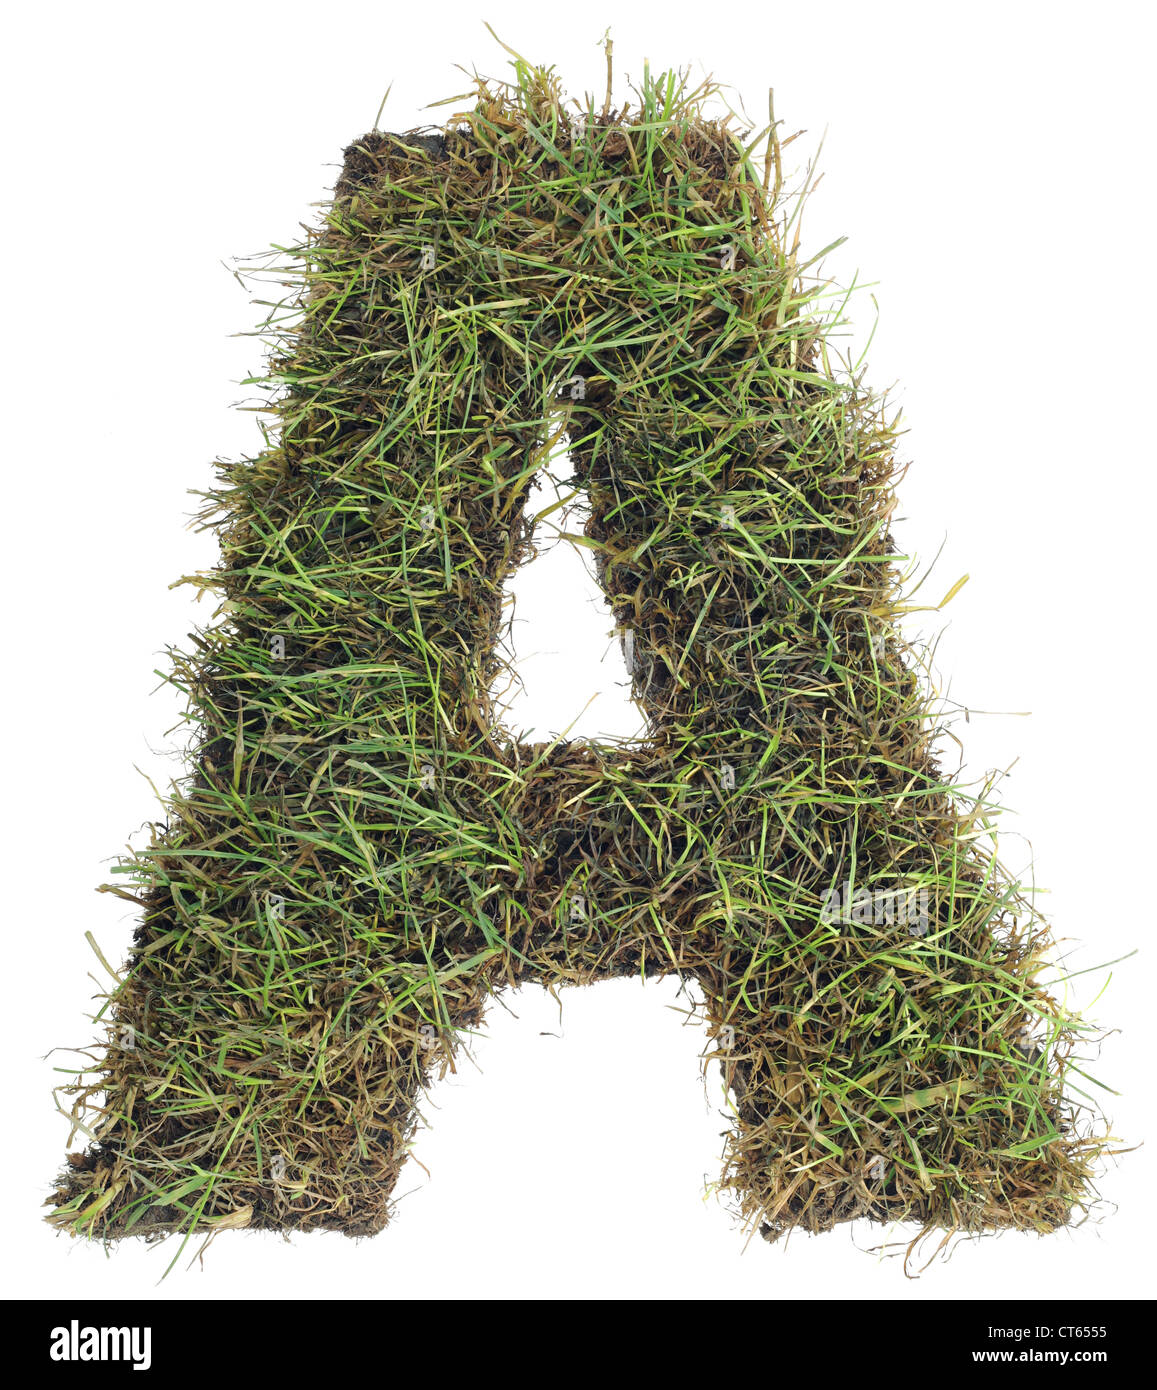 af24147fc Letter A made with Real Grass Isolated on White Background - Stock Image